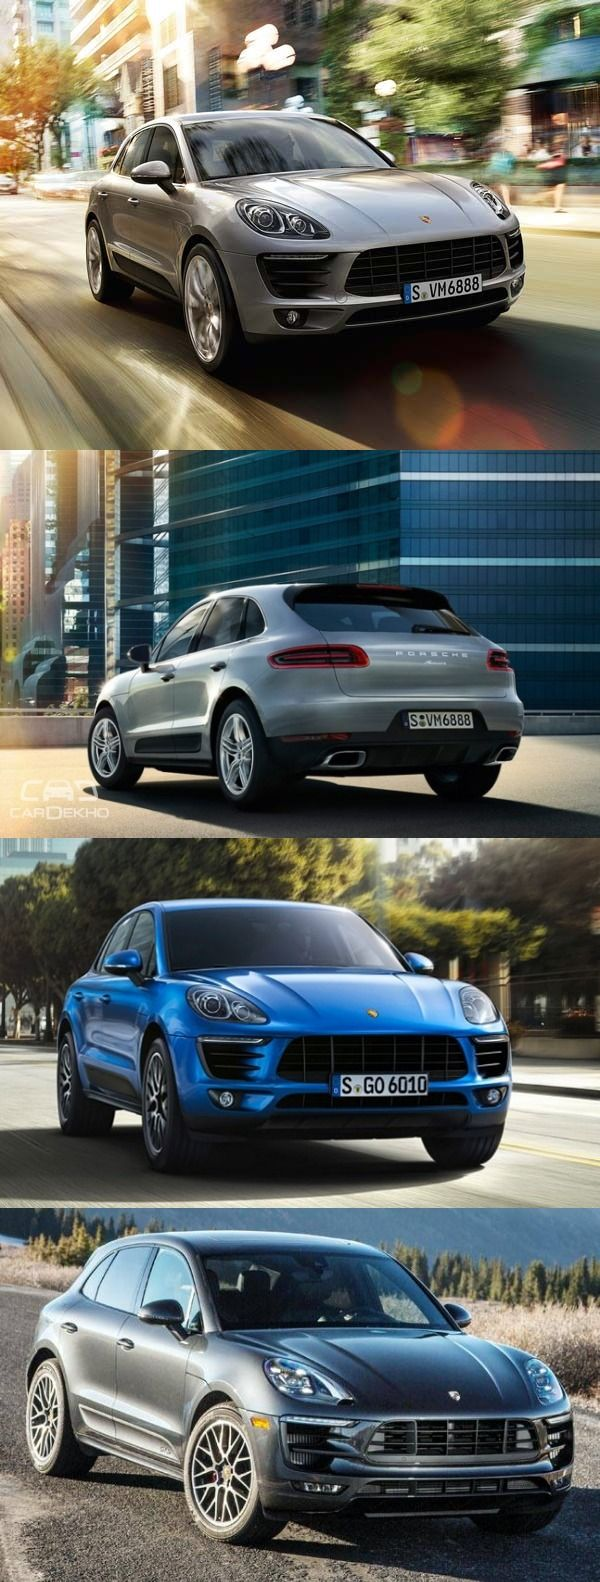 Porsche Macan R4 Launched in India; Priced at INR 76.84